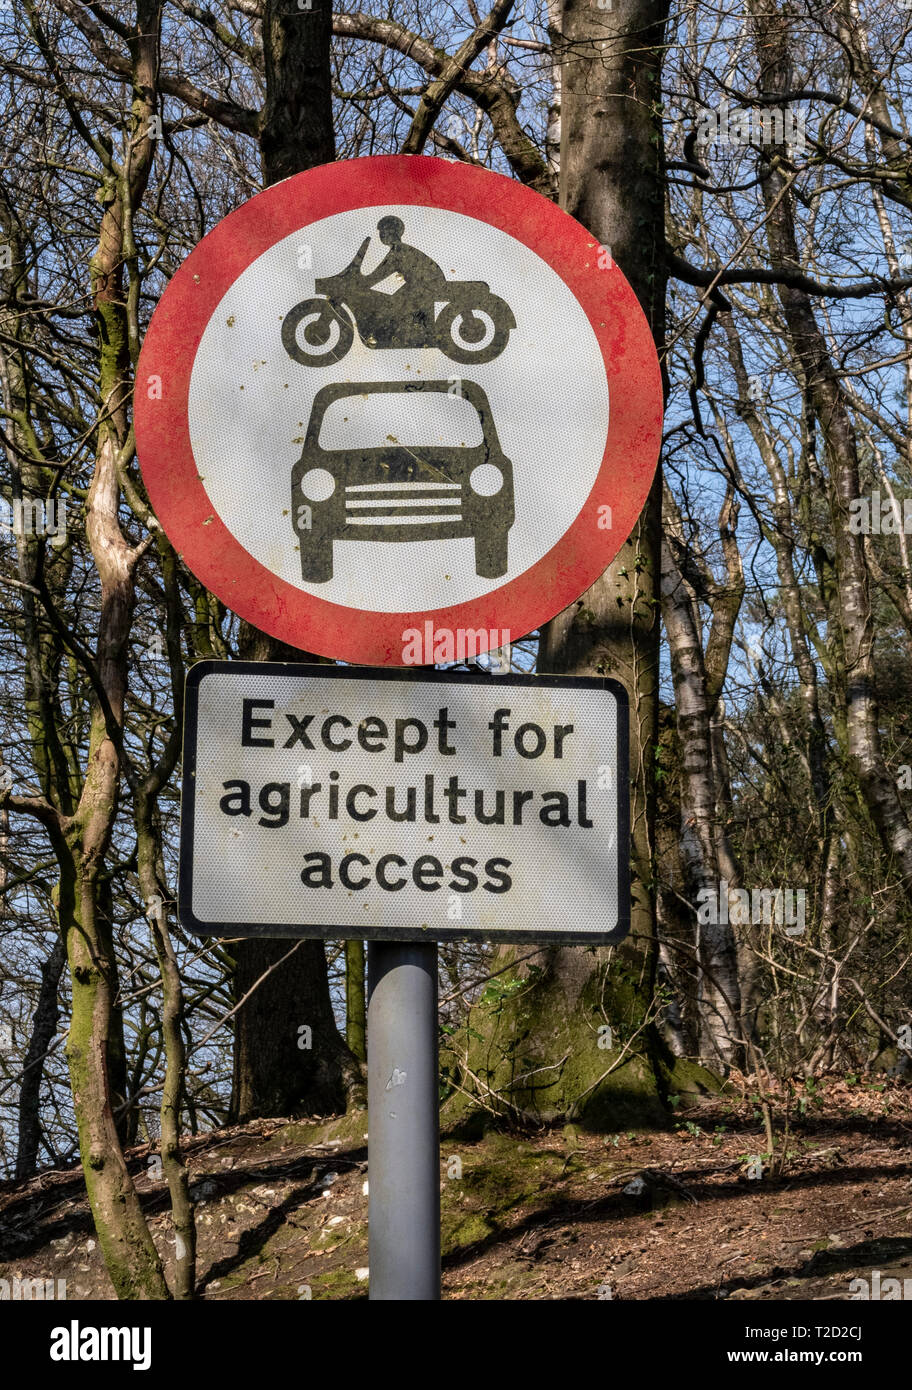 Sign post, no vehicles, vehicular access except agricultural access. Stock Photo